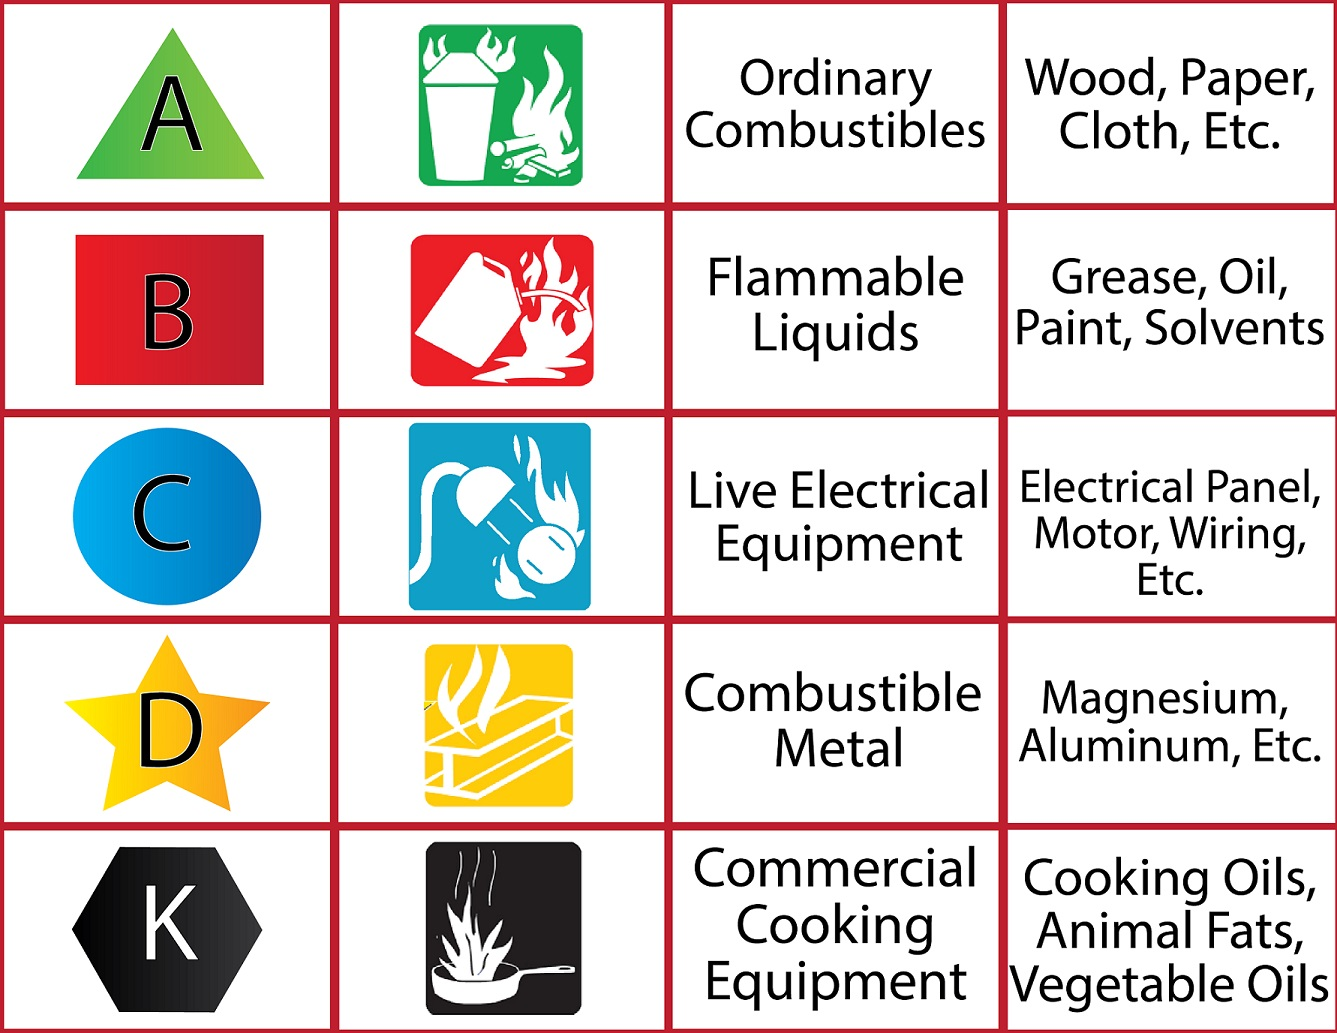 Fire extinguishers rating chart